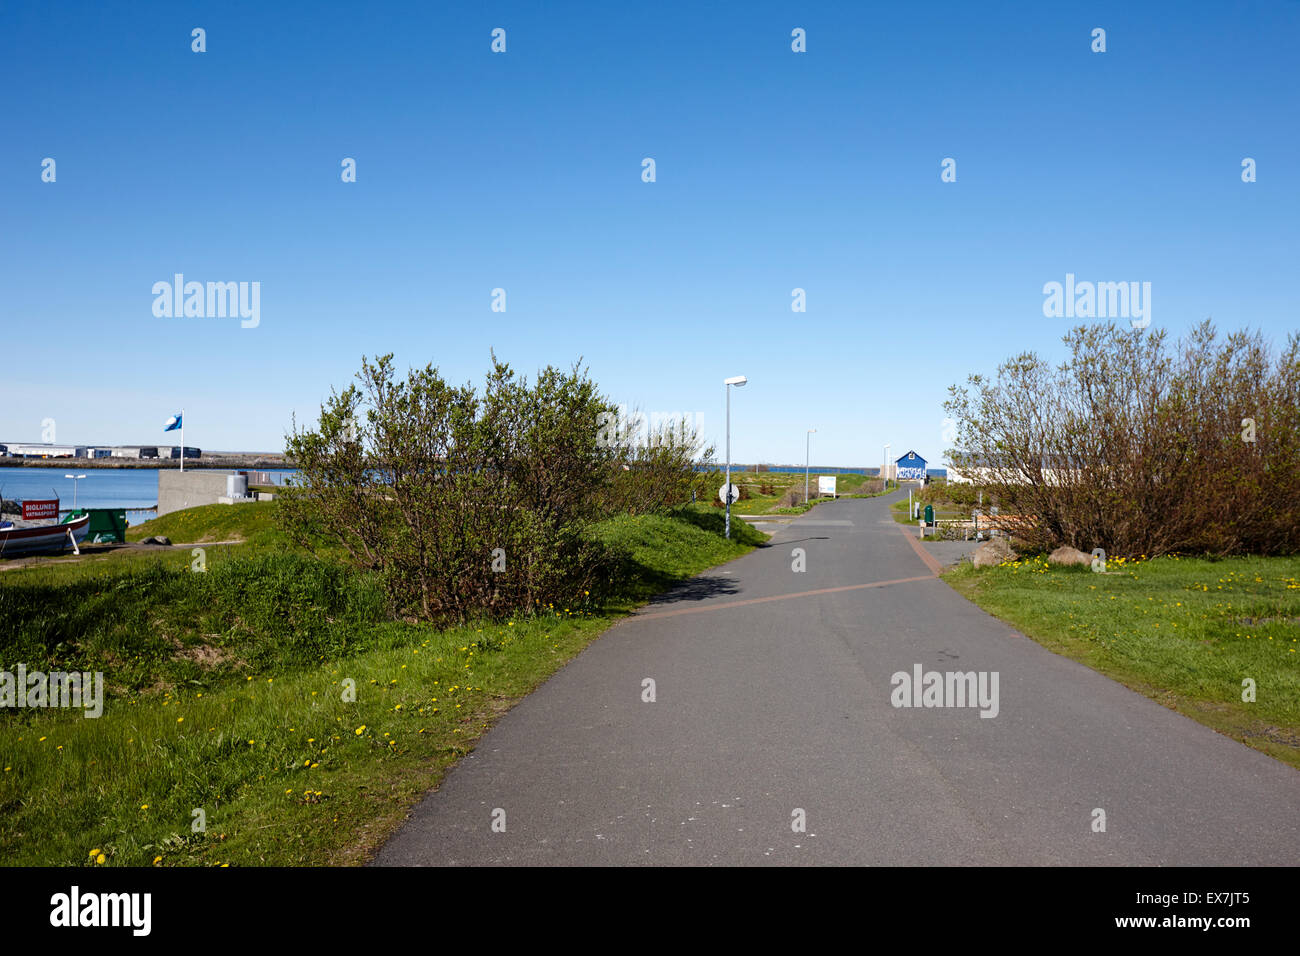 cycle path at nautholsvik artificial heated beach reykjavik iceland - Stock Image